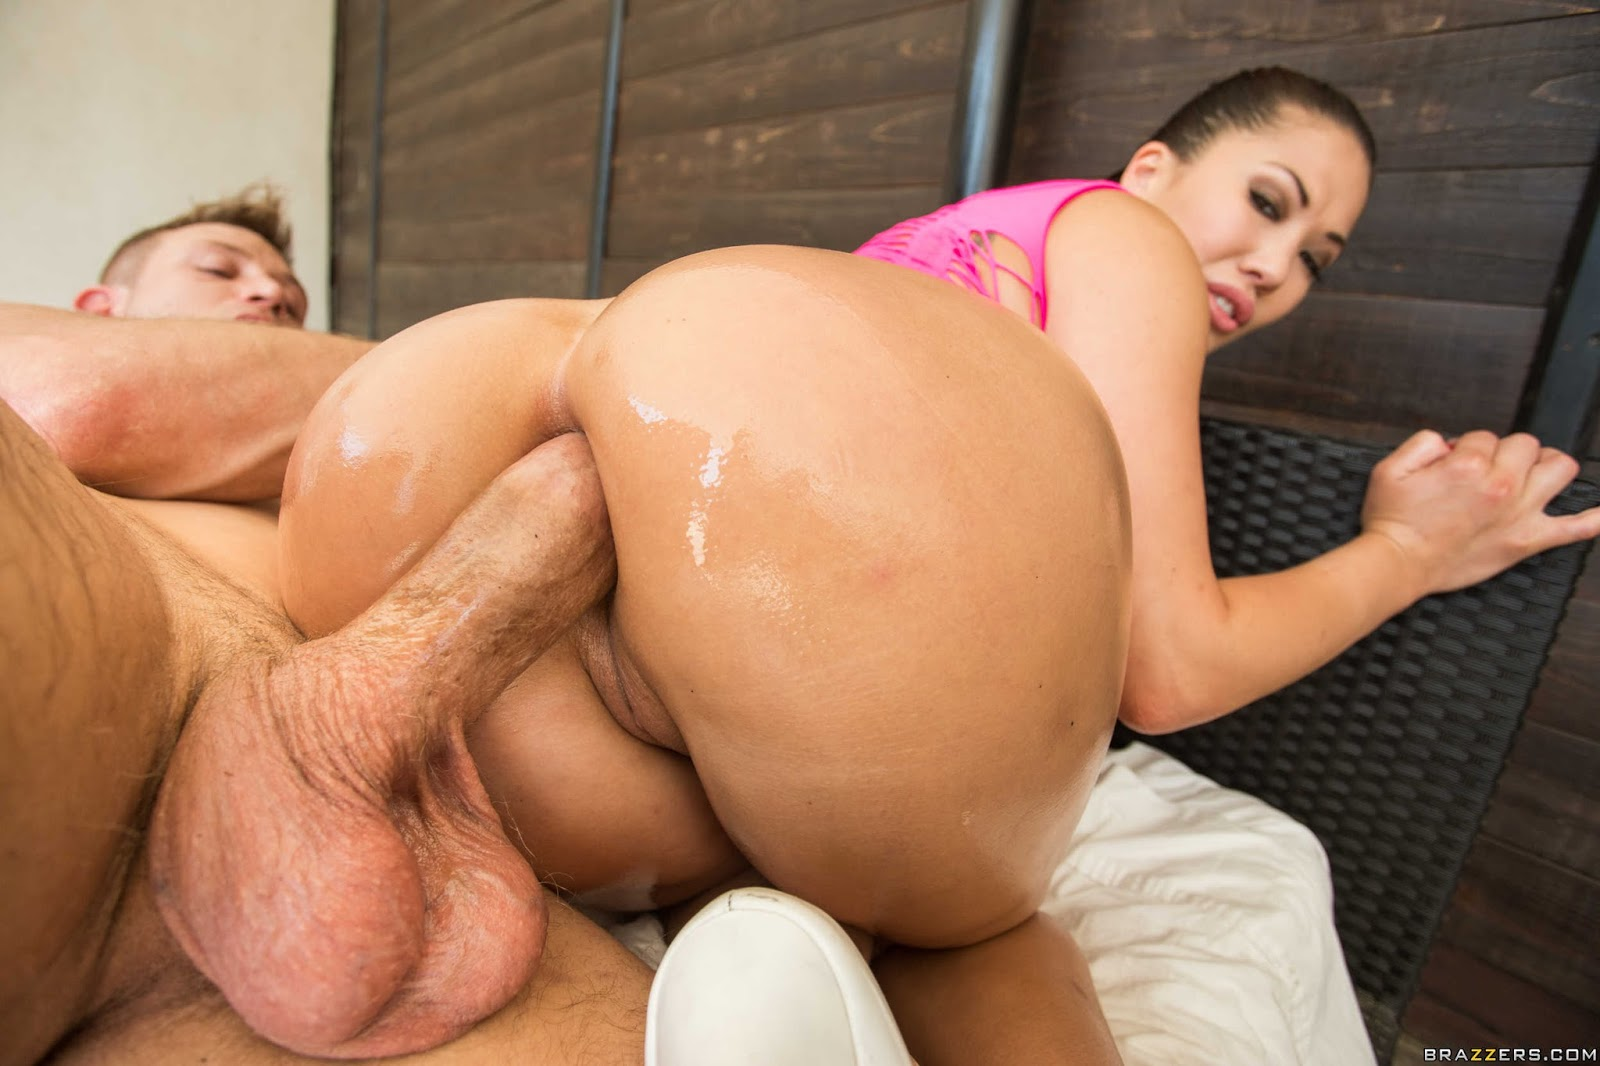 Wet big butt slut girl get hard fuck photo